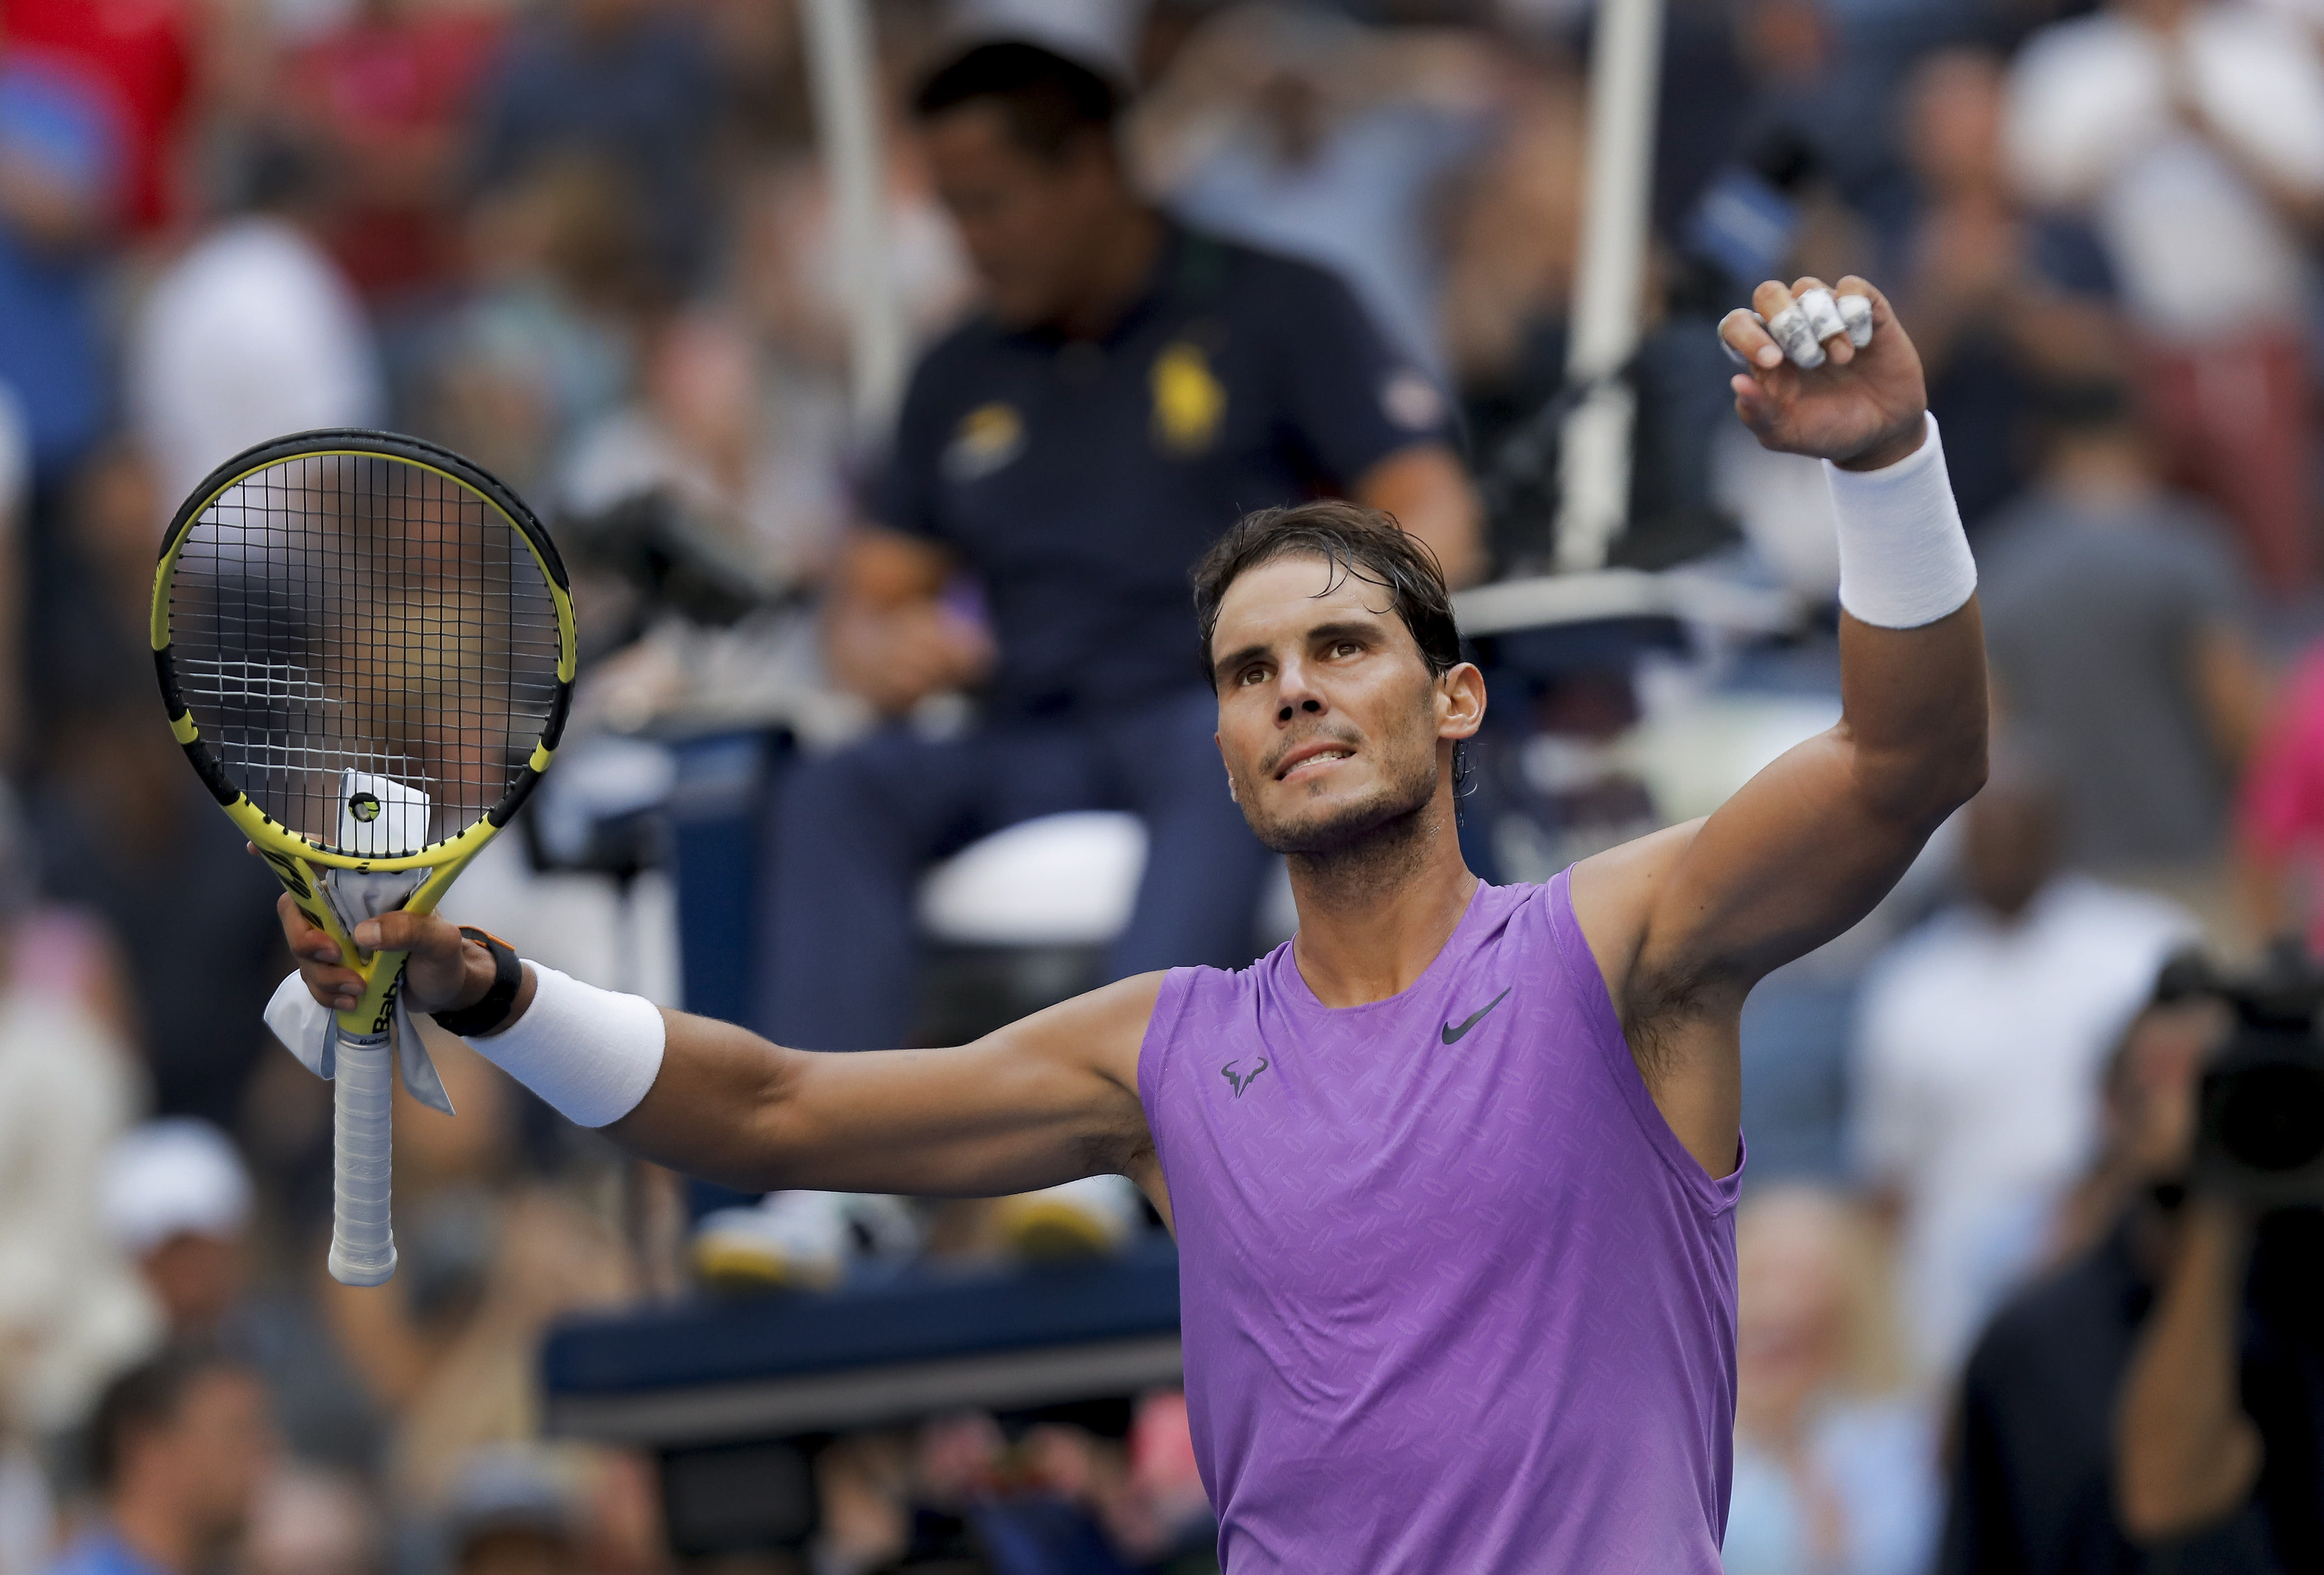 Rafael Nadal, of Spain, reacts to the crowd after defeating Hyeon Chung, of South Korea, during round three of the US Open tennis championships Saturday, Aug. 31, 2019, in New York. (AP Photo/Eduardo Munoz Alvarez)